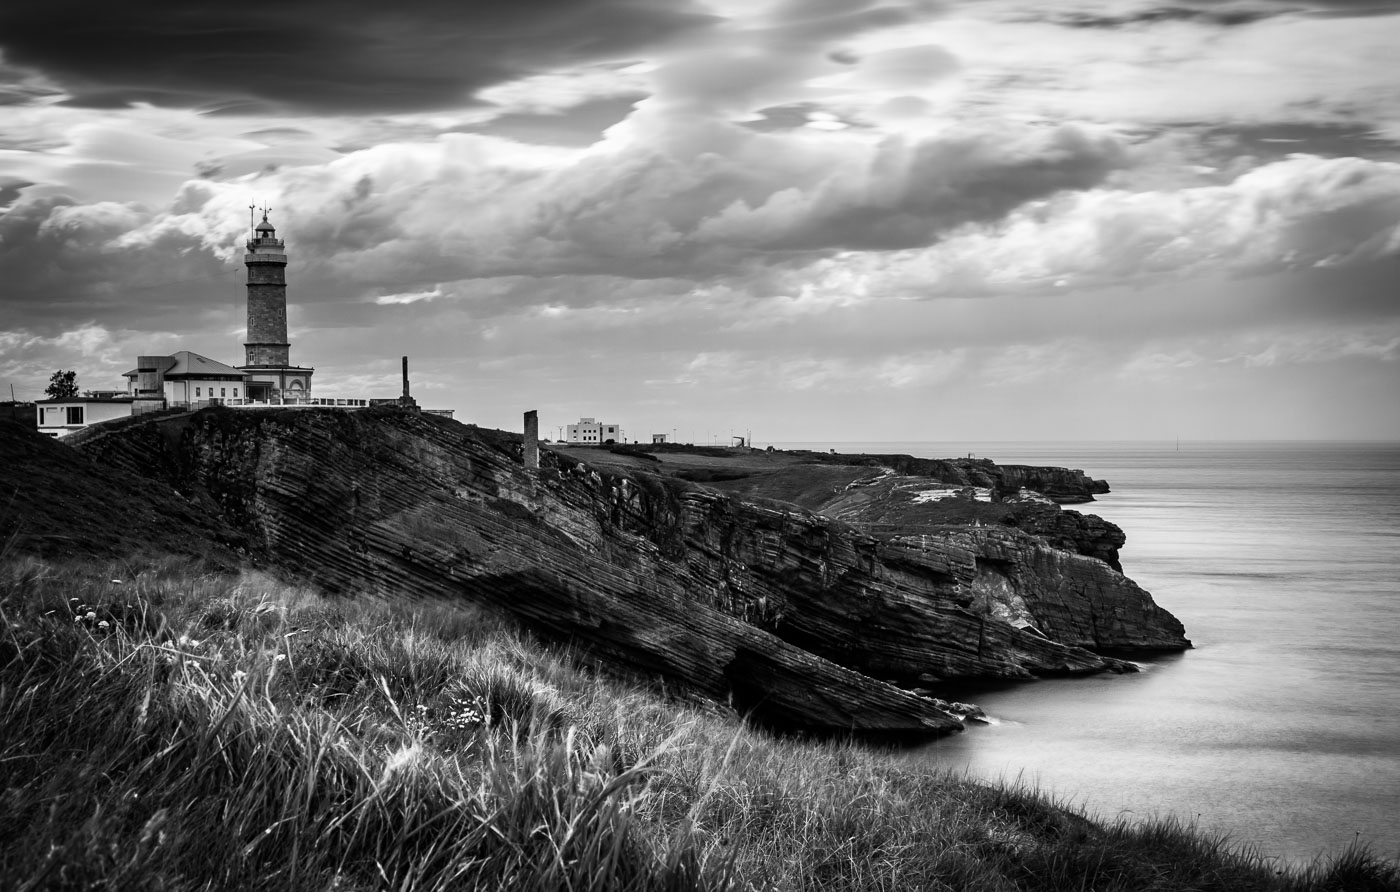 The lighthouse in Santander, Spain. I made a promise to myself that I would always practice my long exposure daytime photography when travelling. The second to last day of the conference I hired bicycles with my colleagues to go out in the afternoon and have a look at the lighthouse, a joy for photographers. I went back to the hotel that evening, copied my photos from the camera to the laptop and erased the card (rookie mistake: never travel with less than 2 cards regardless of their size). Two days later my laptop died while still in Spain and recovery utilities on a colleague's laptop could recover this single image from that day. A single image!